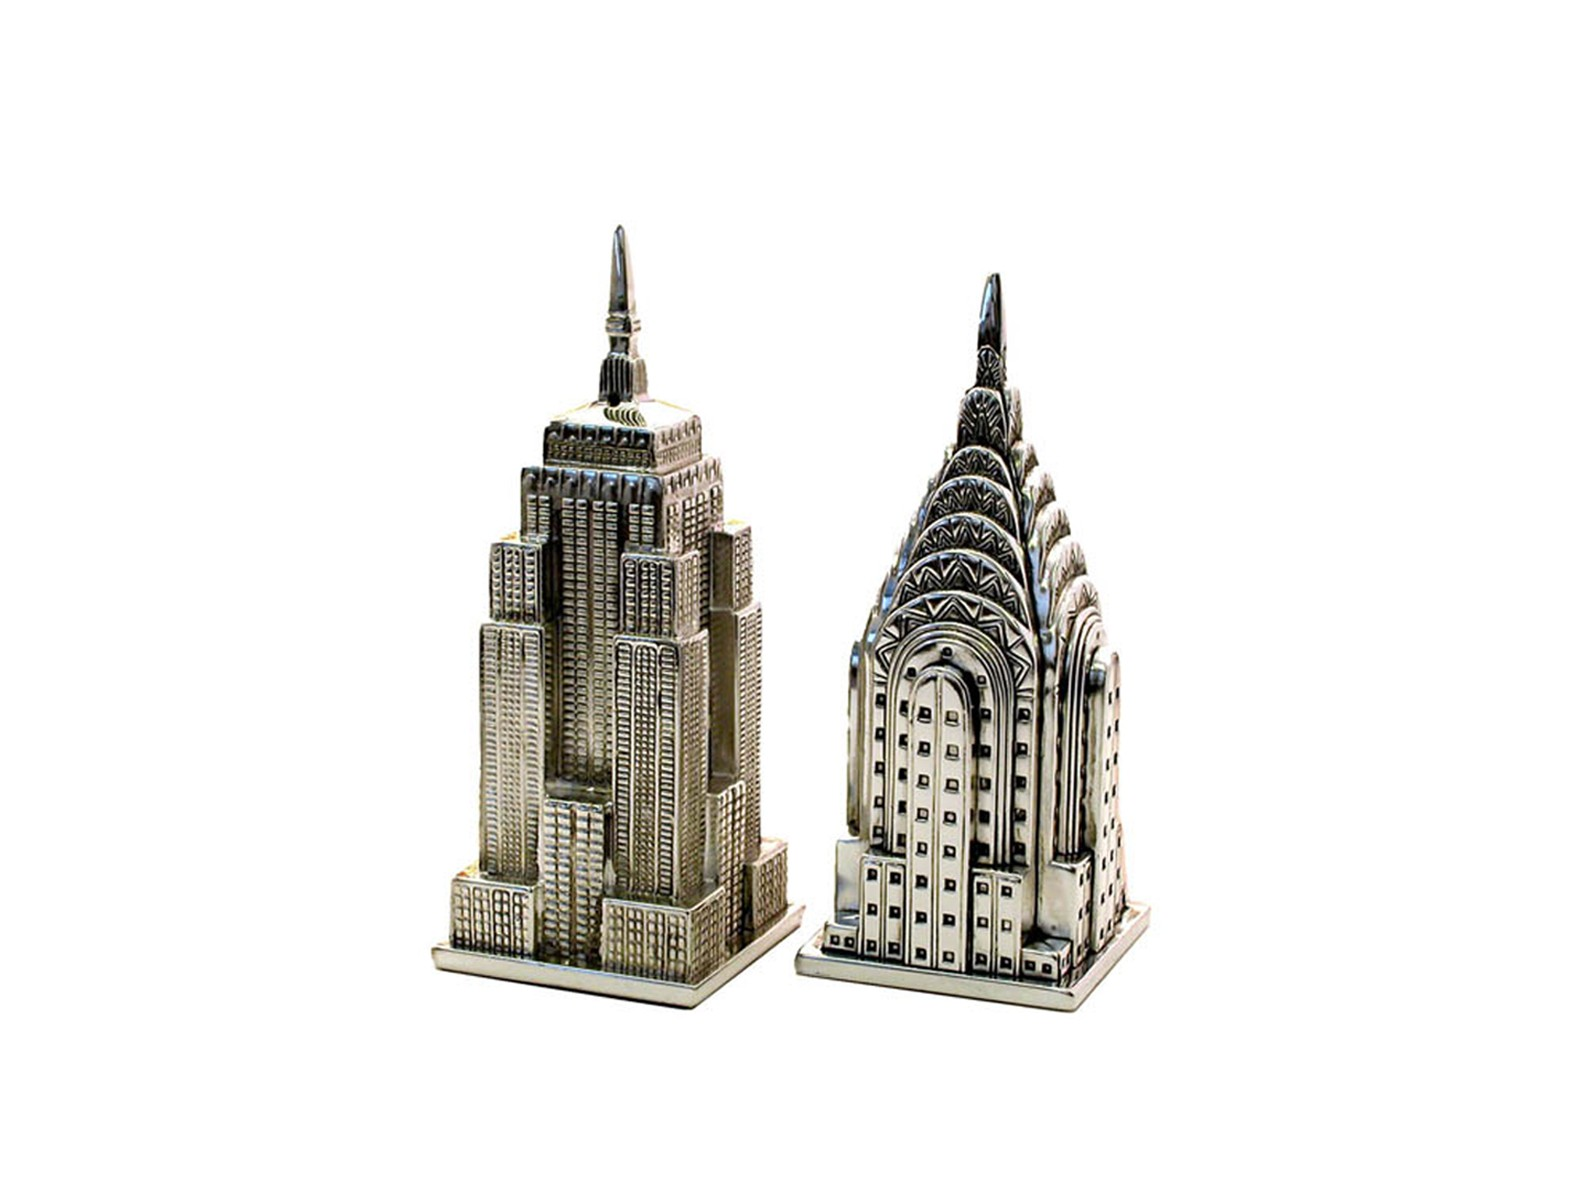 Salt and pepper shakers shaped like the top of the Empire State and Chrysler buildings